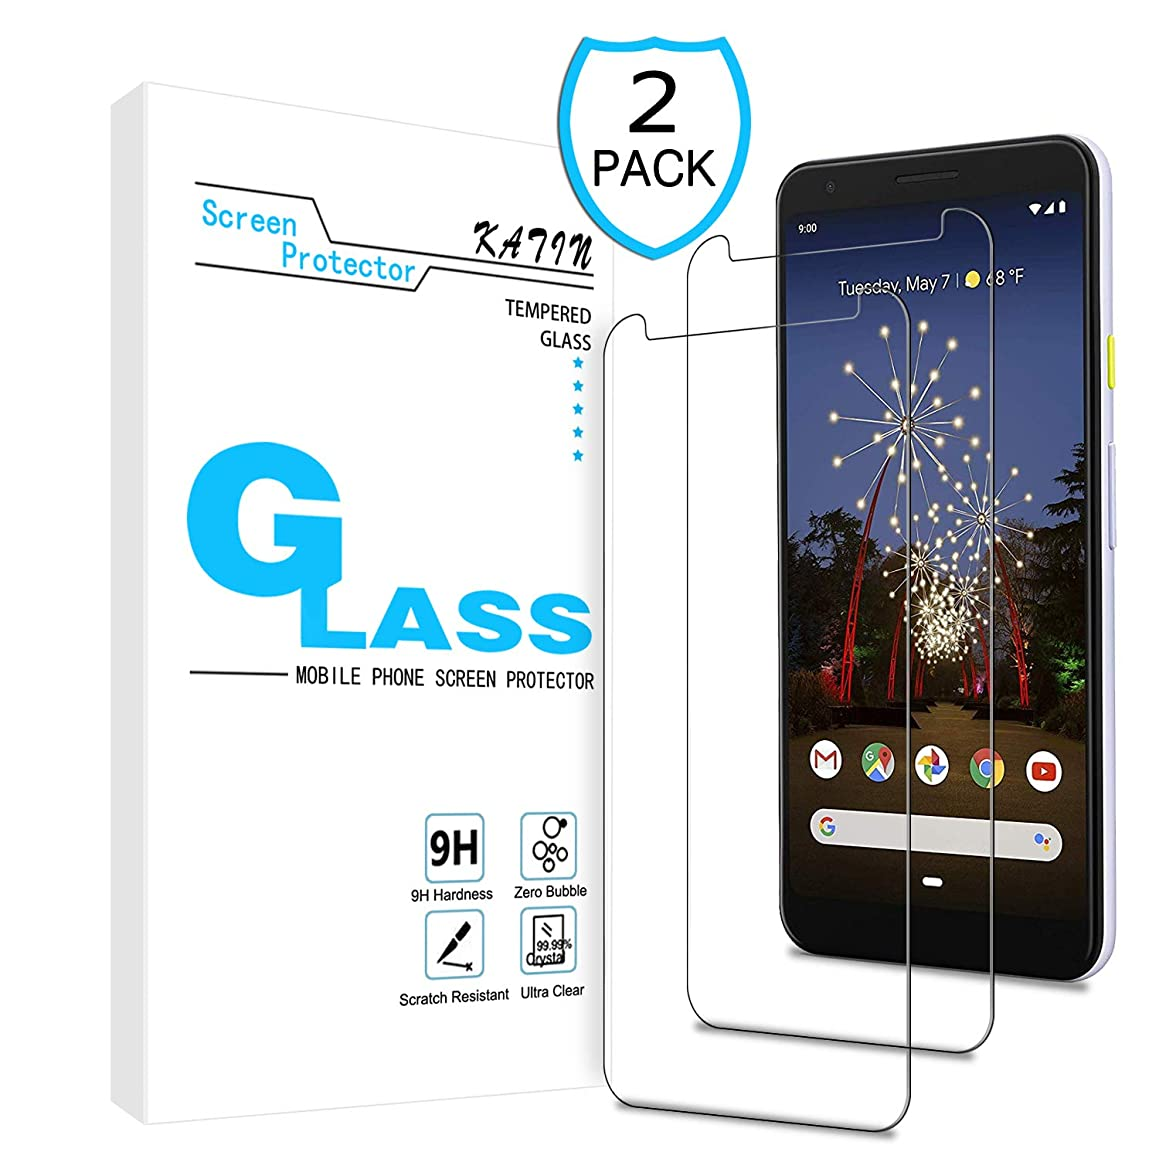 KATIN Google Pixel 3A XL Screen Protector - [2-Pack] Tempered Glass for Google Pixel 3A XL (6.0-inch) Screen Protector Easy to Install, Bubble Free, 9H Hardness with Lifetime Replacement Warranty